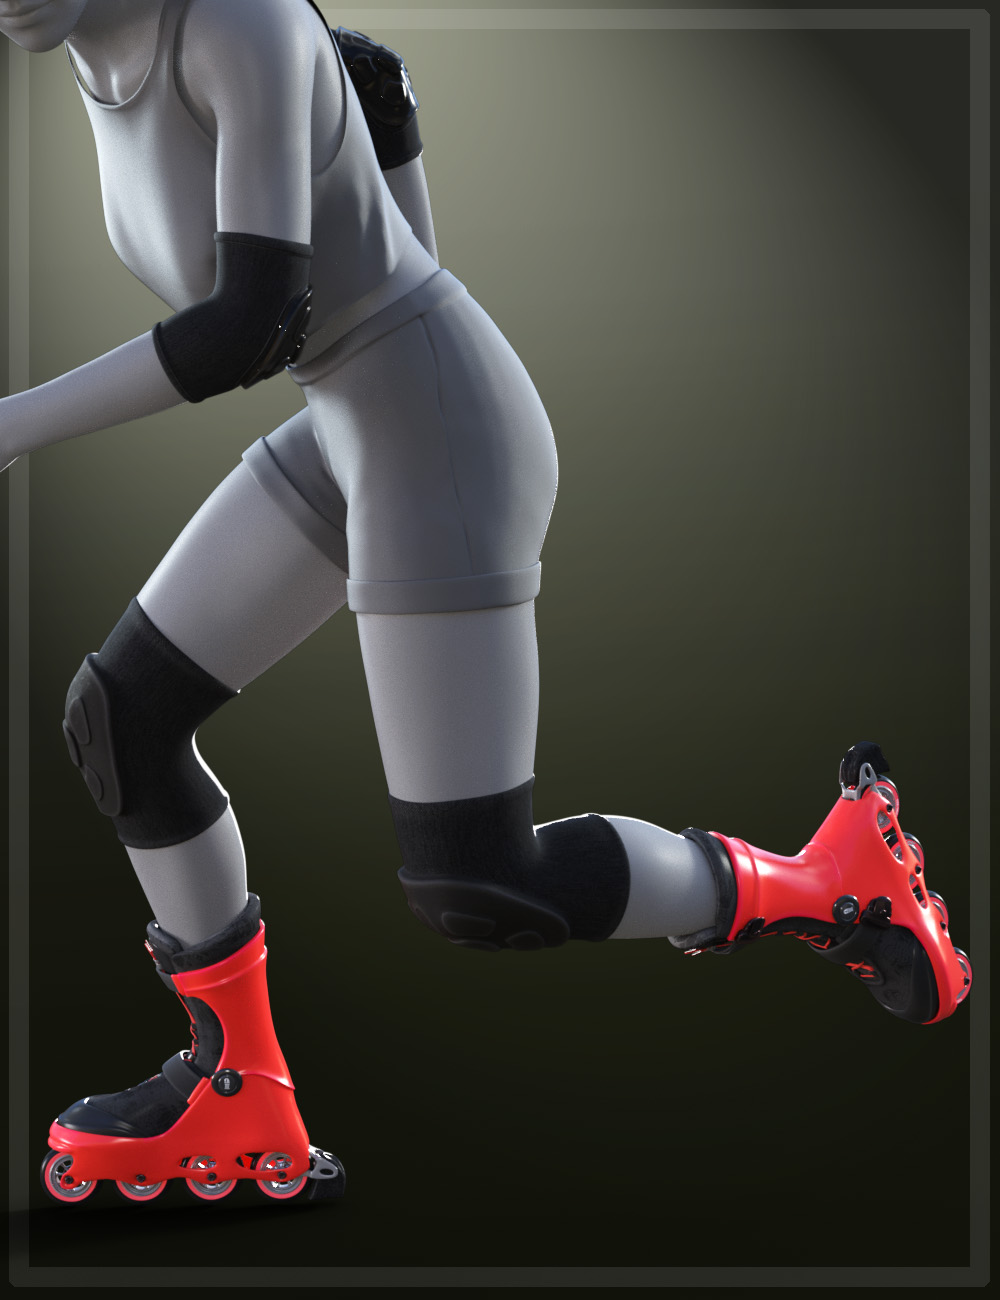 Roller Blade for Genesis 8 and 8.1 Females by: tentman, 3D Models by Daz 3D